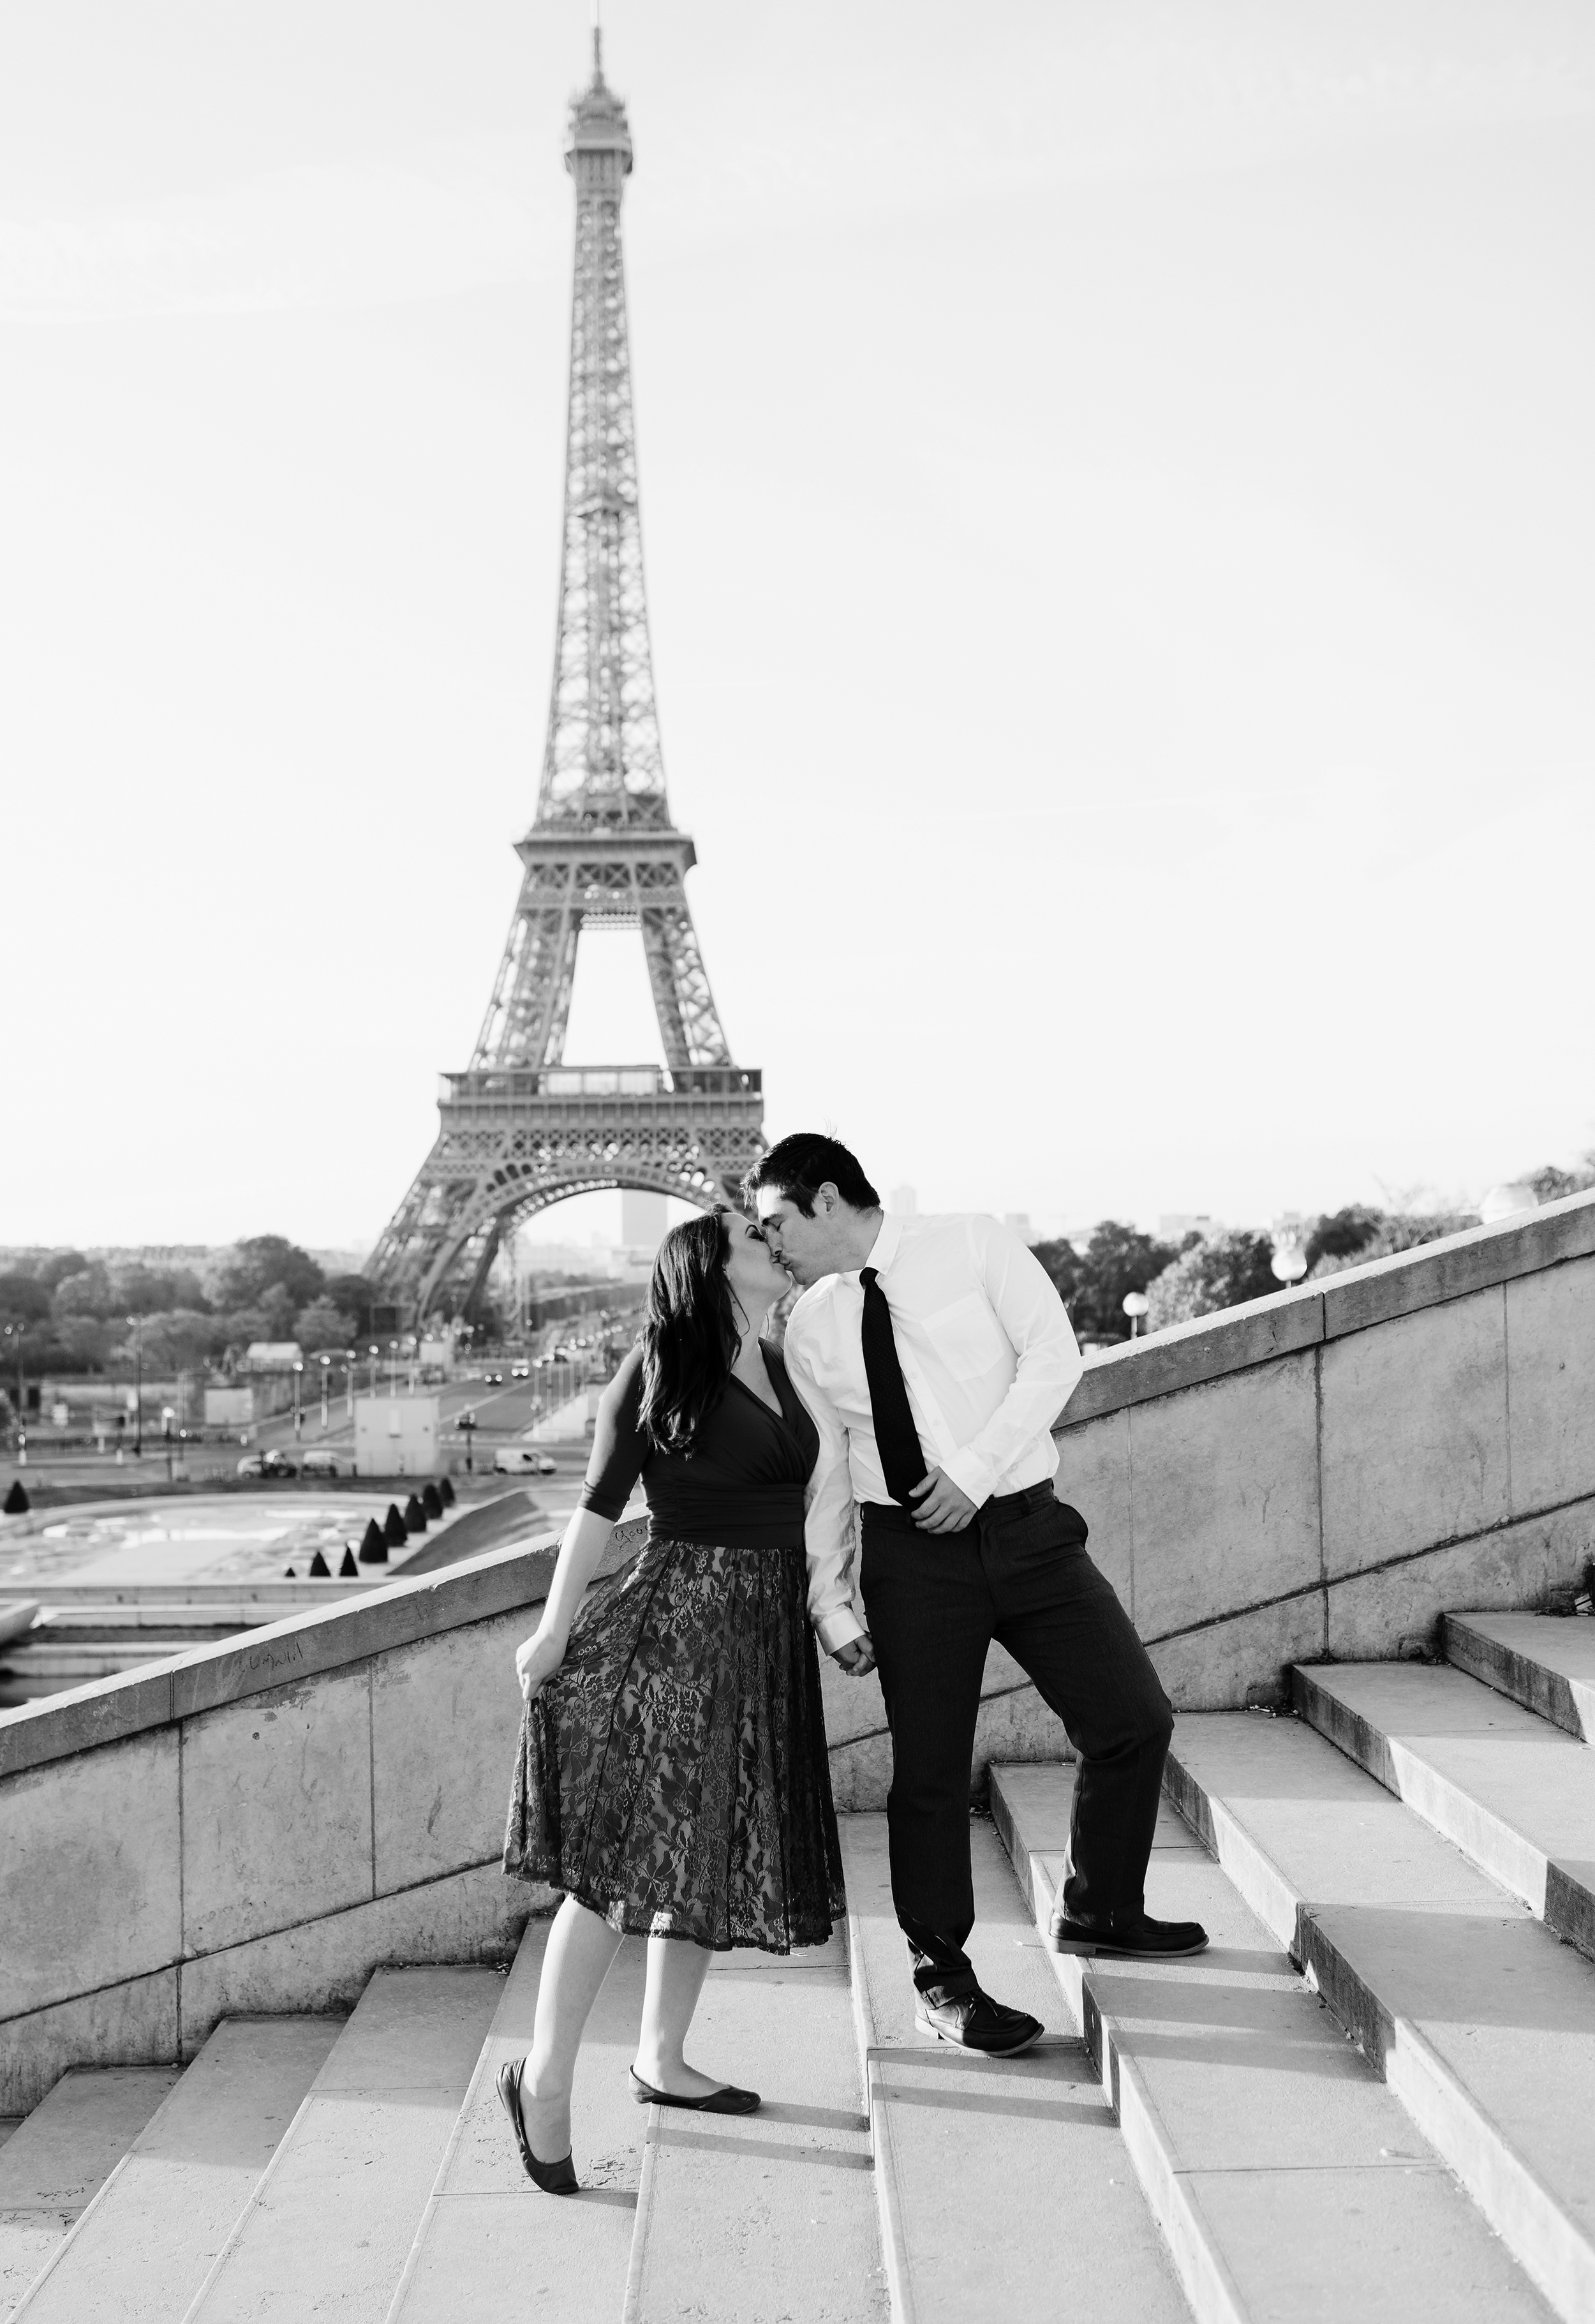 Couple-photoshoot-Anniversary-Paris-Eiffel-Tower-Trocadero042.jpg